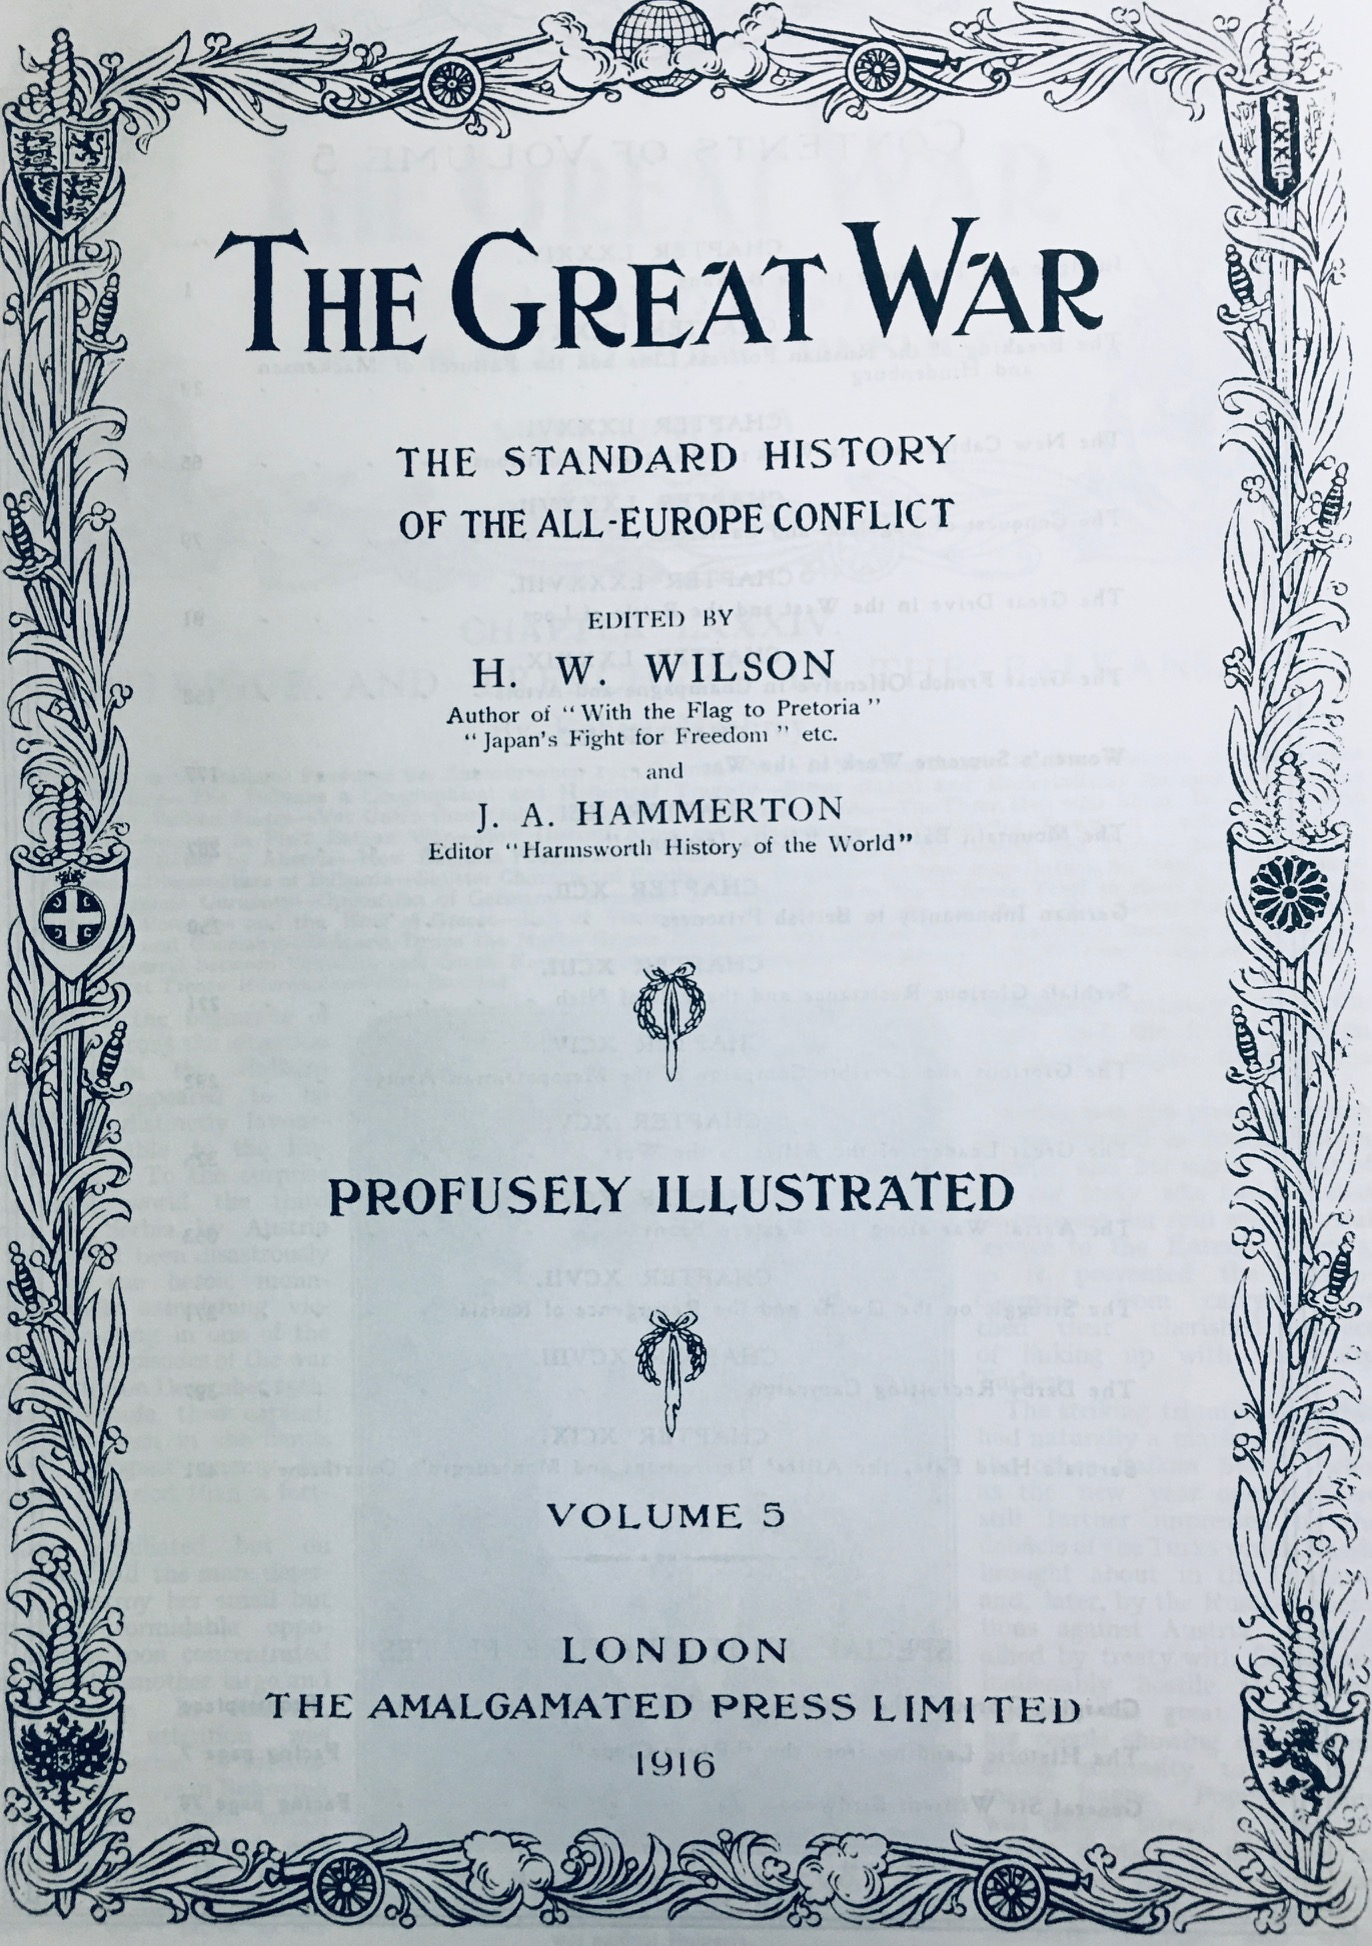 Image for The Great War - Deadlock (The Great War Series - Book III)  - Contains Volume 5 & Volume 6 of the original 13 Volume Set